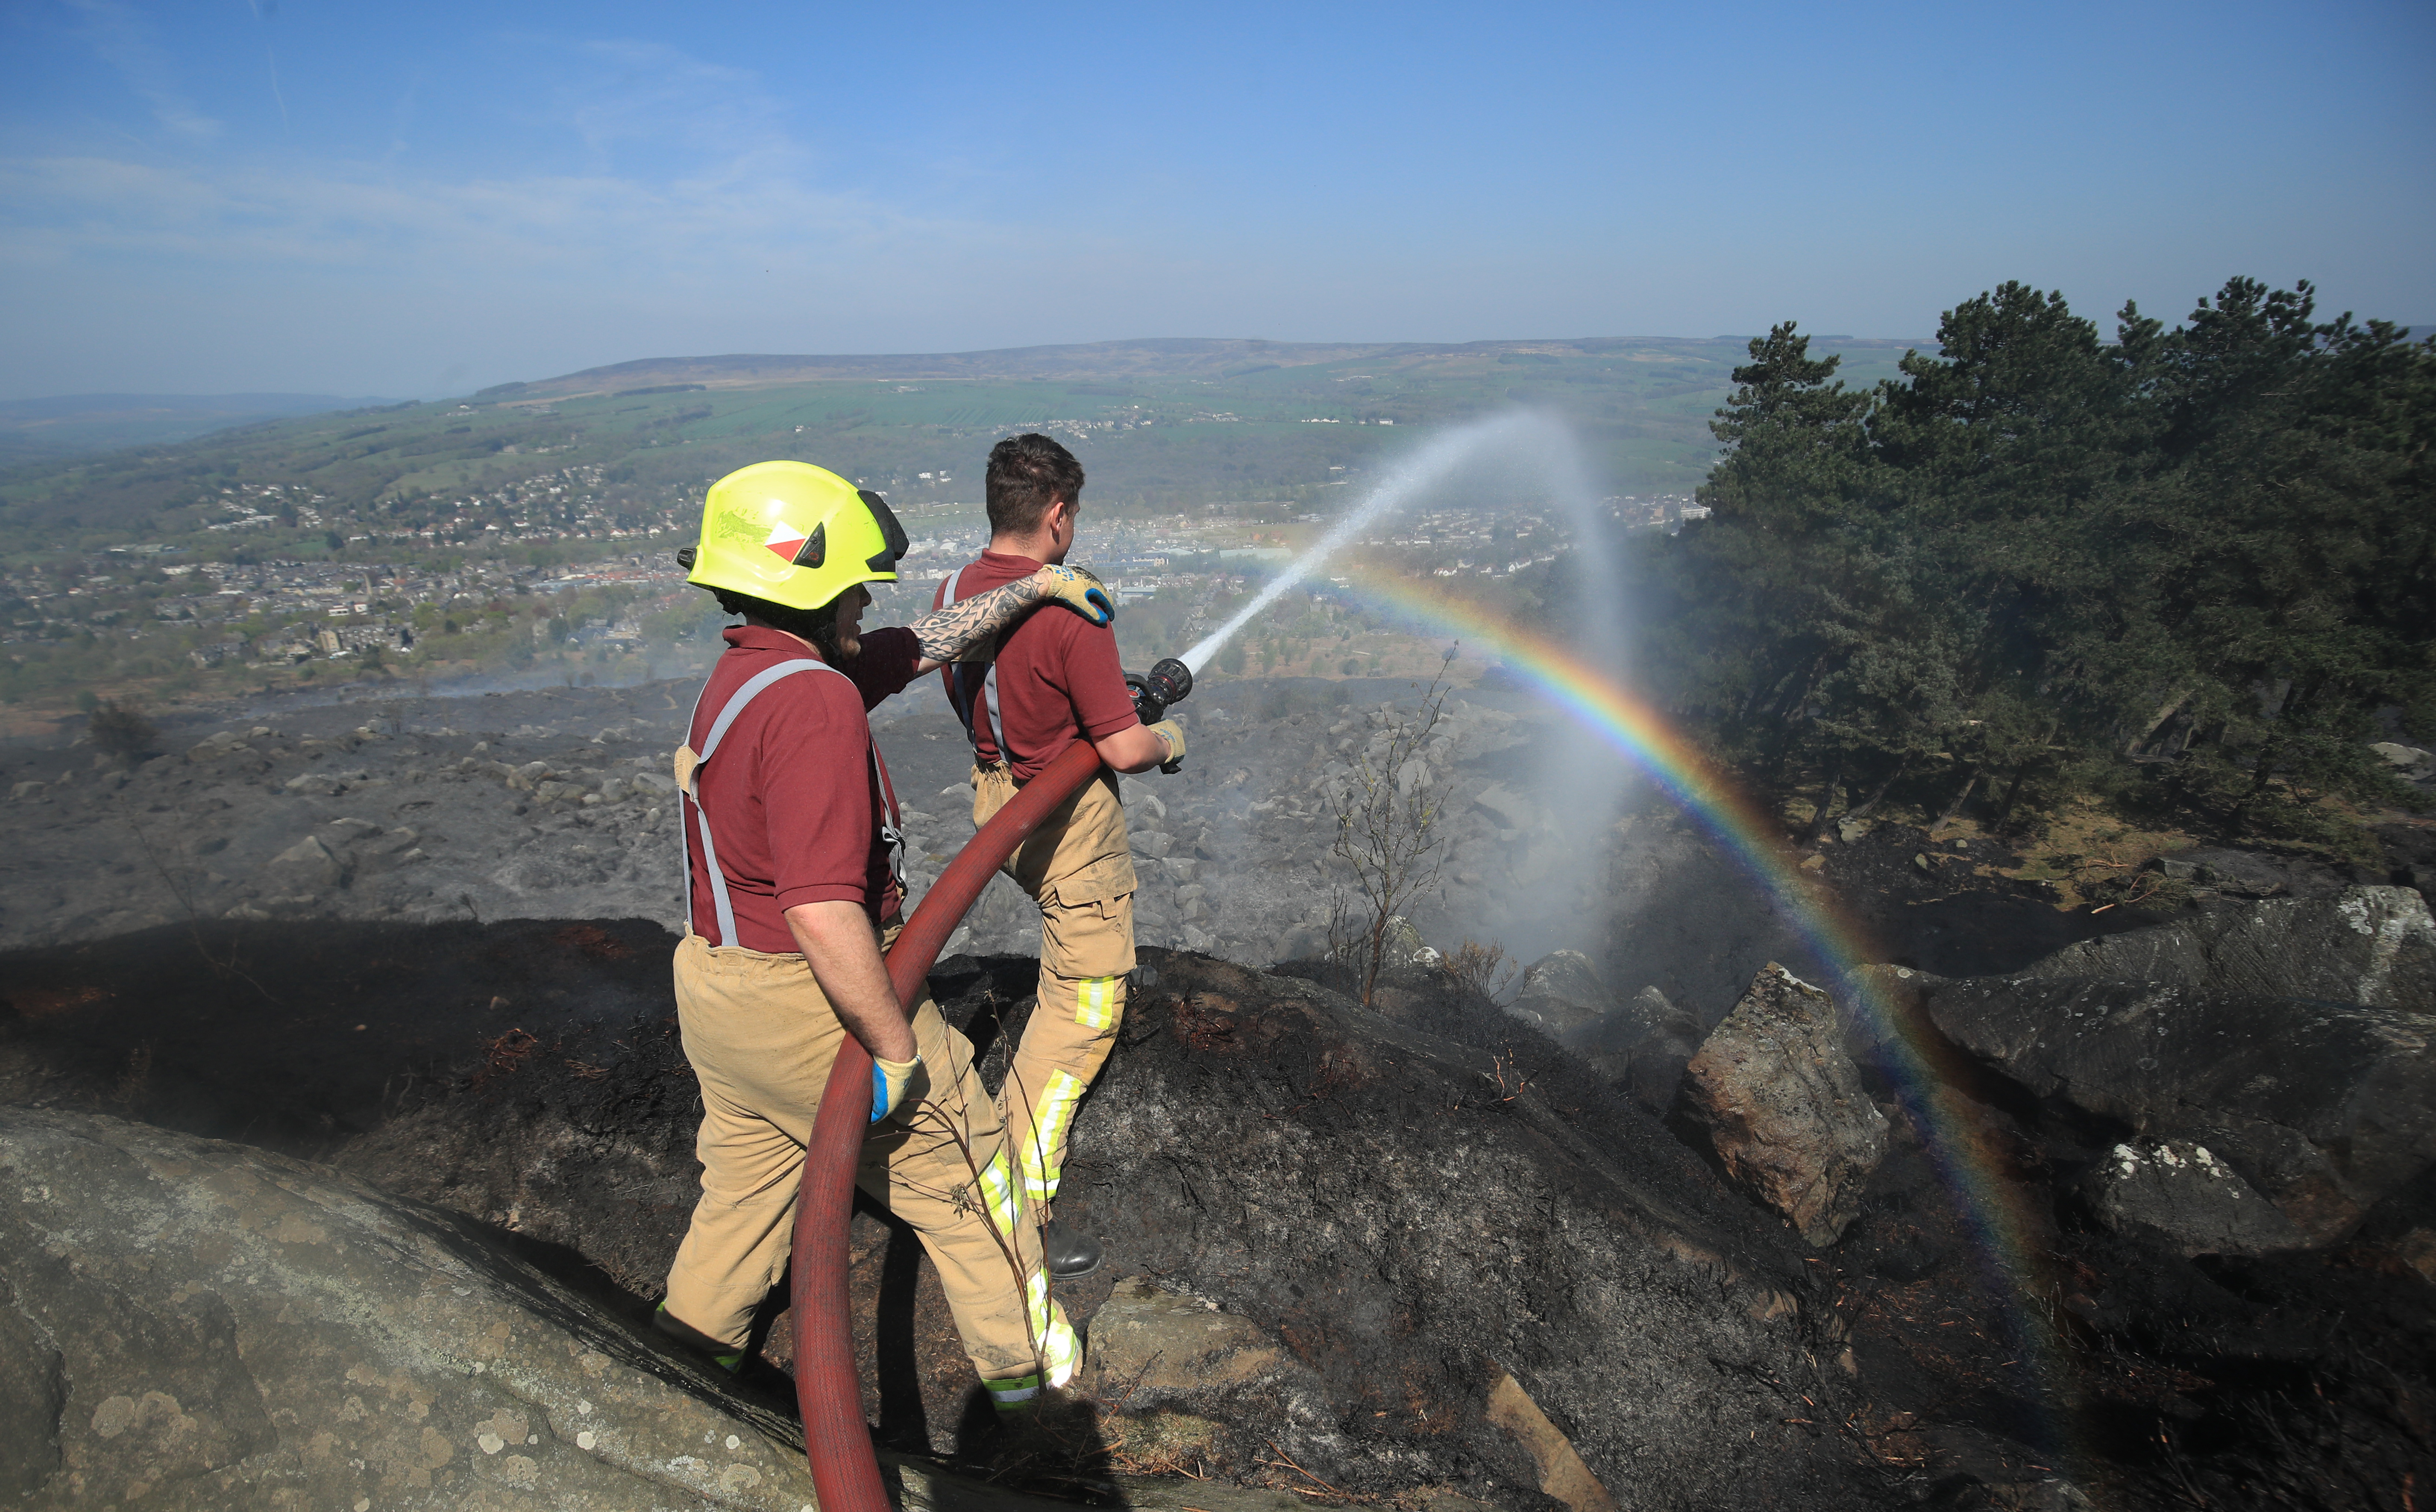 Firefighters battled the fire over Easter bank holiday weekend. Credit: PA